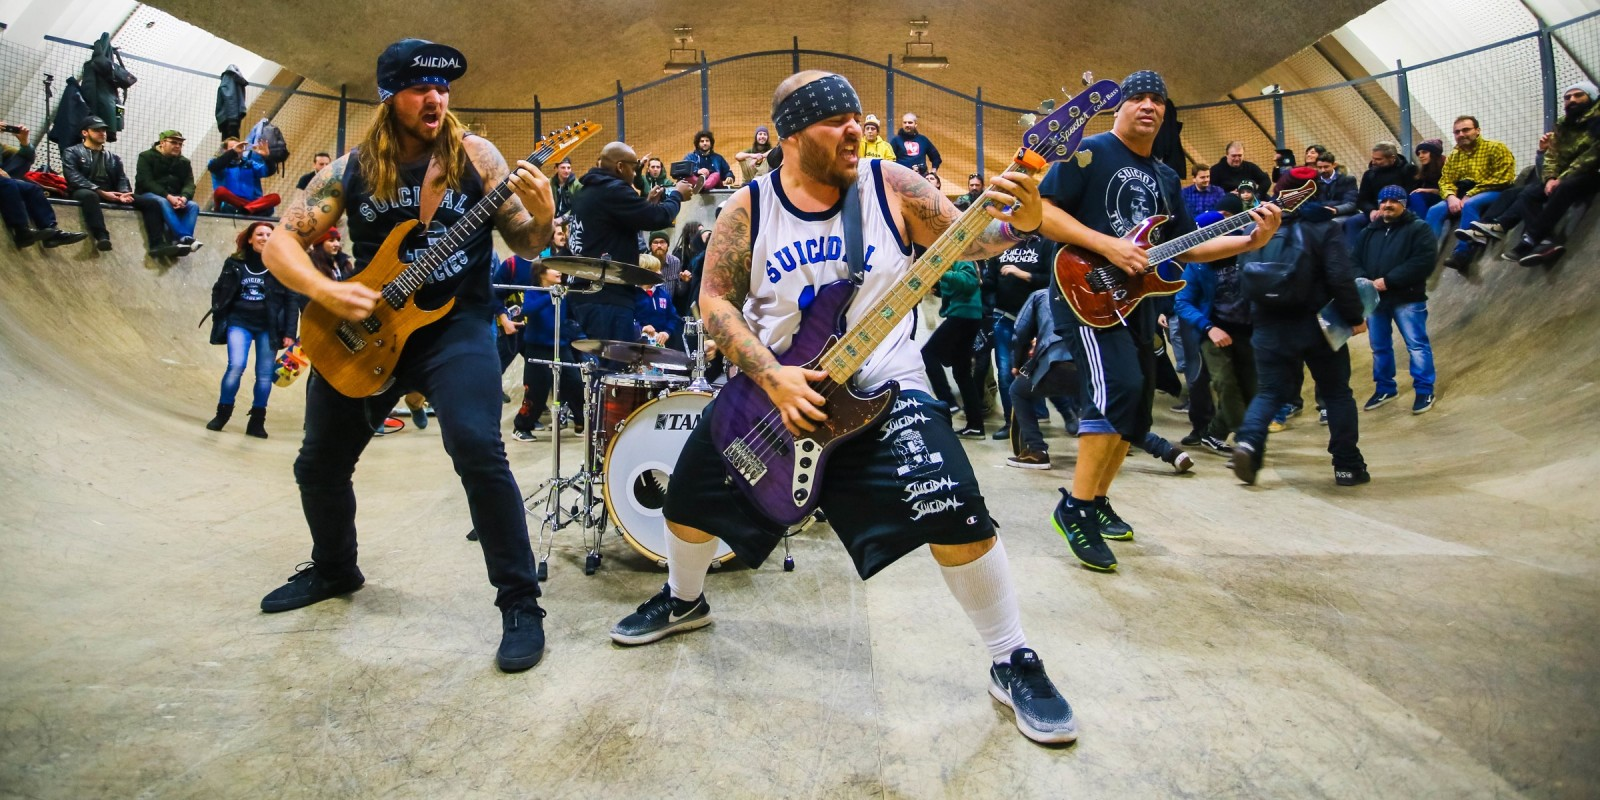 Suicidal Tendencies recording their new video at Bastard Bowl with skaters riding